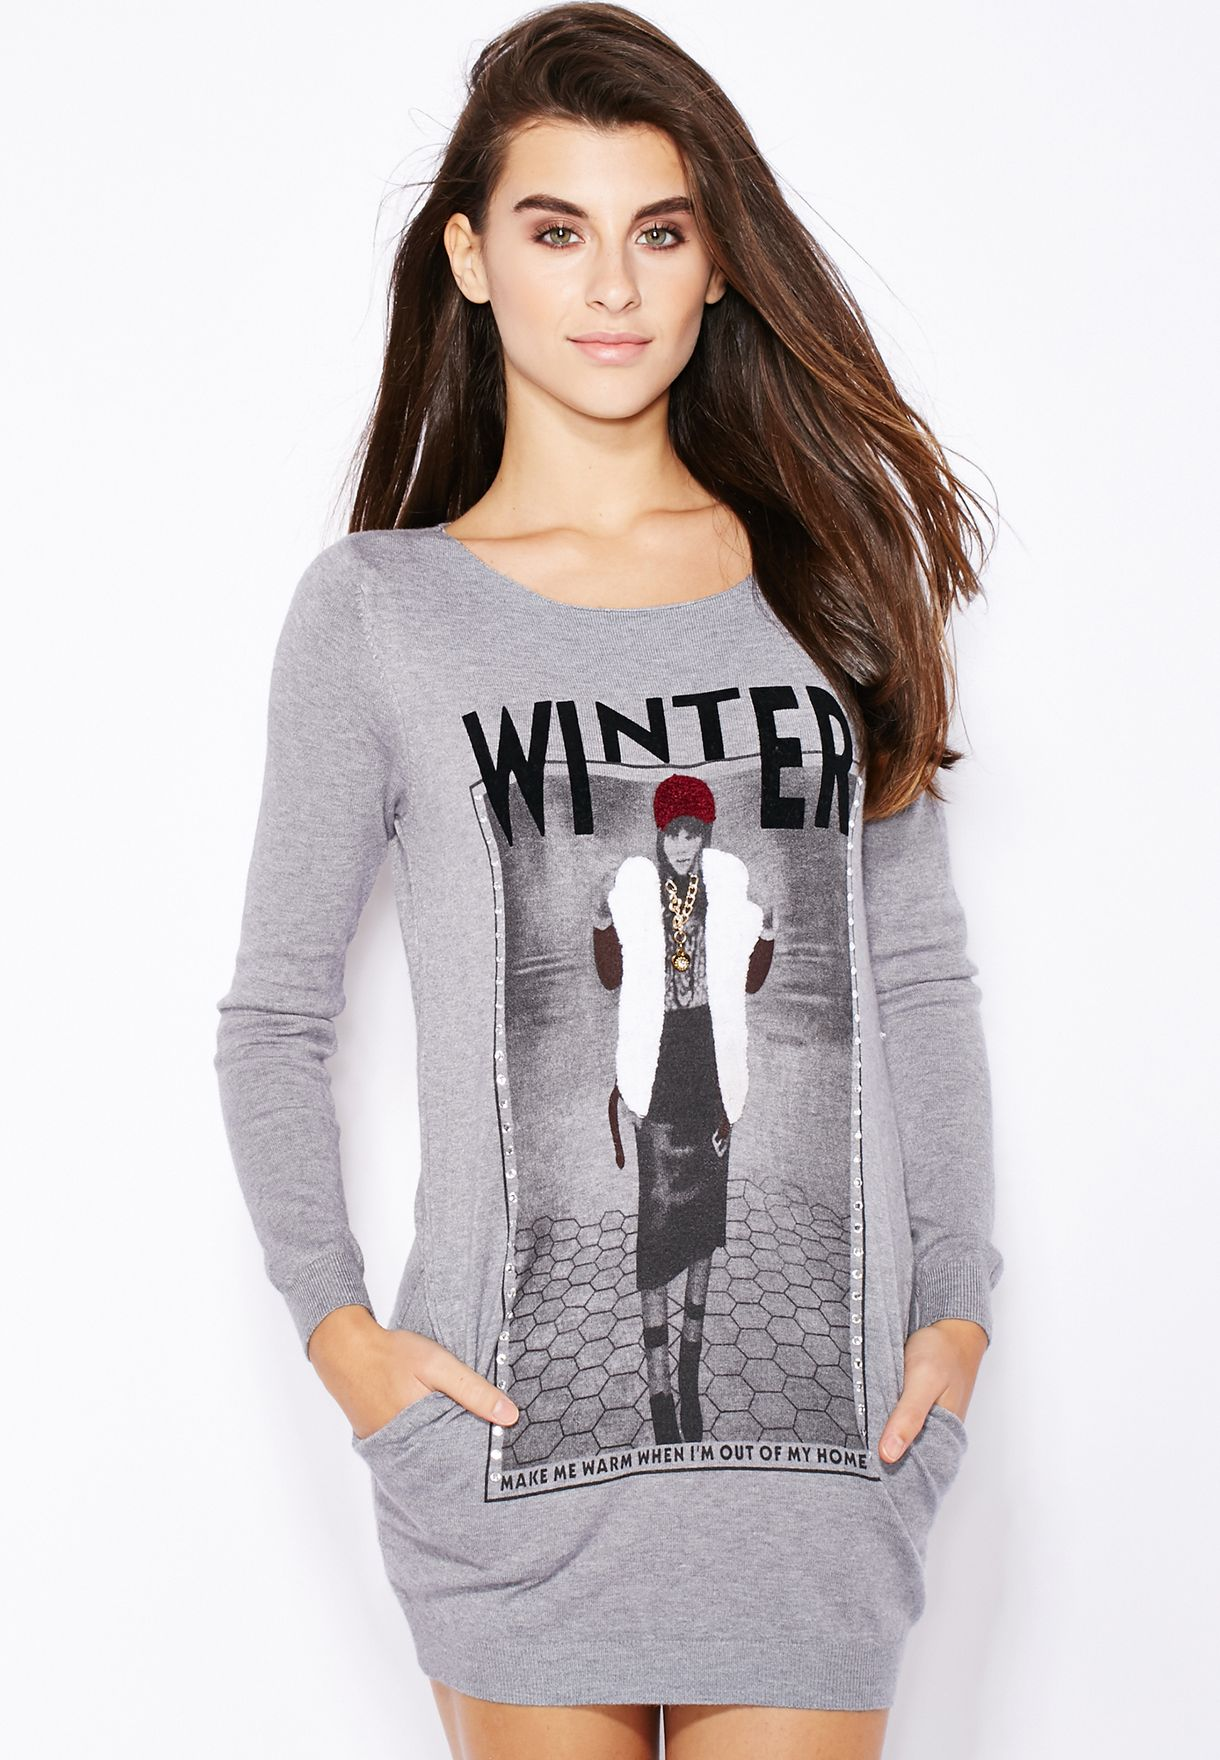 c0c36015090 Shop Ginger grey Slogan Sweater for Women in UAE - GI121AT51DPW